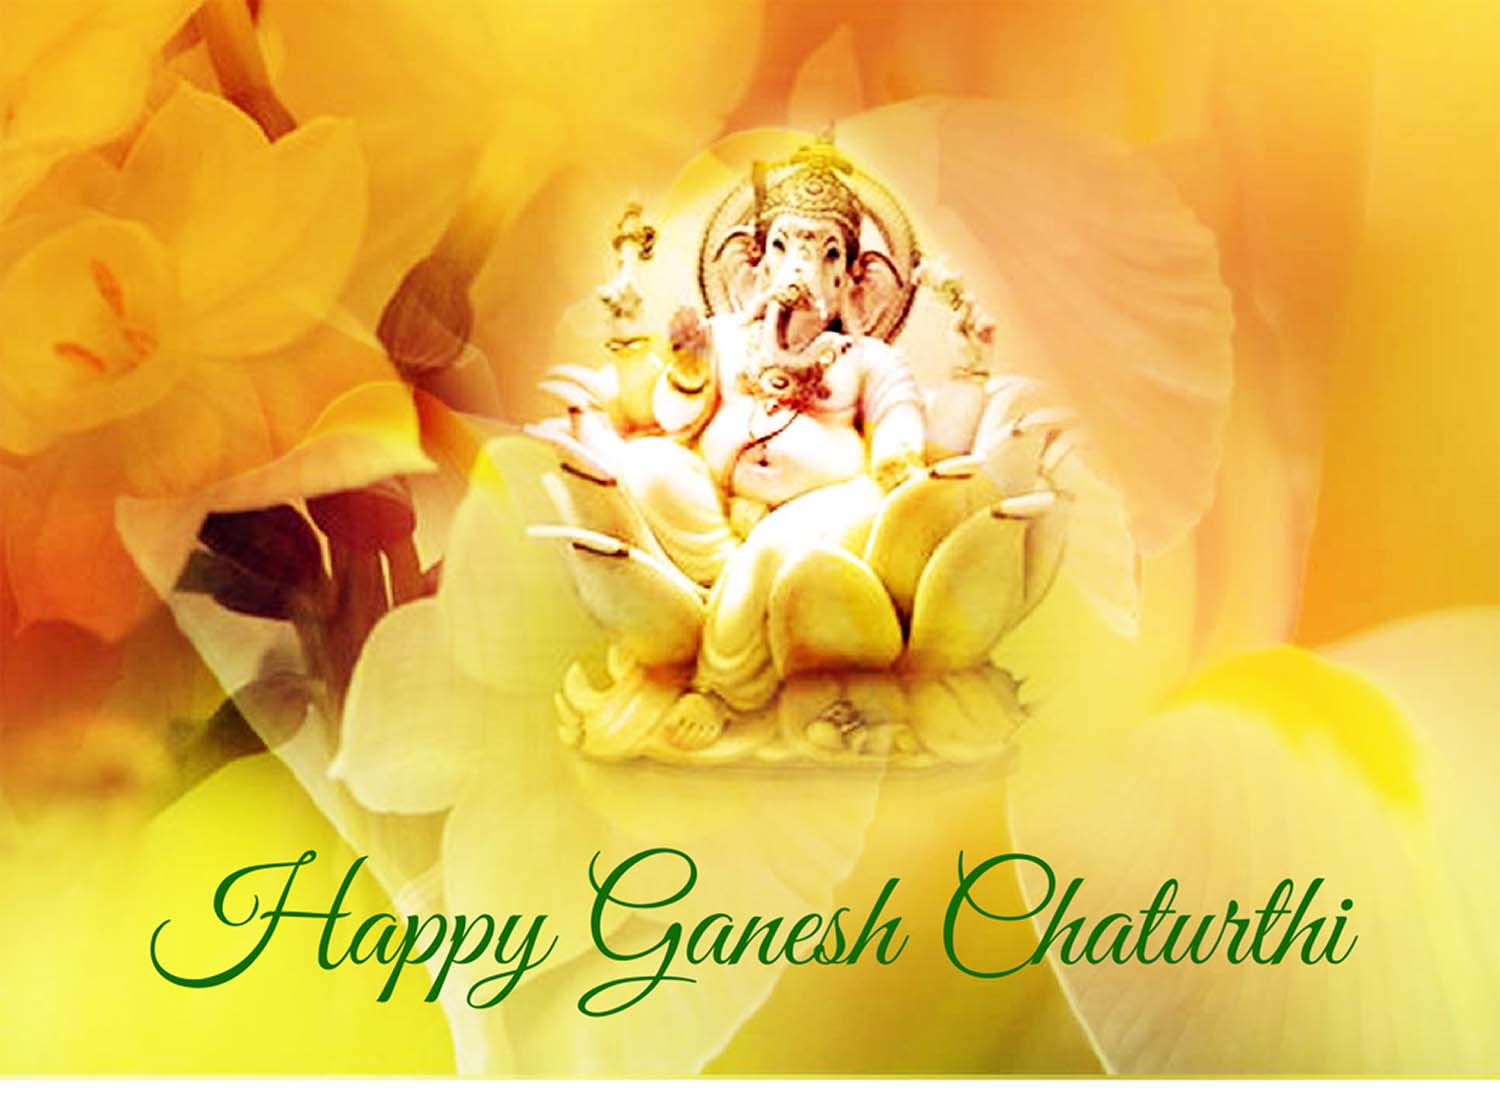 Lovely Happy Ganesh Chaturthi wallpaper in flowers!